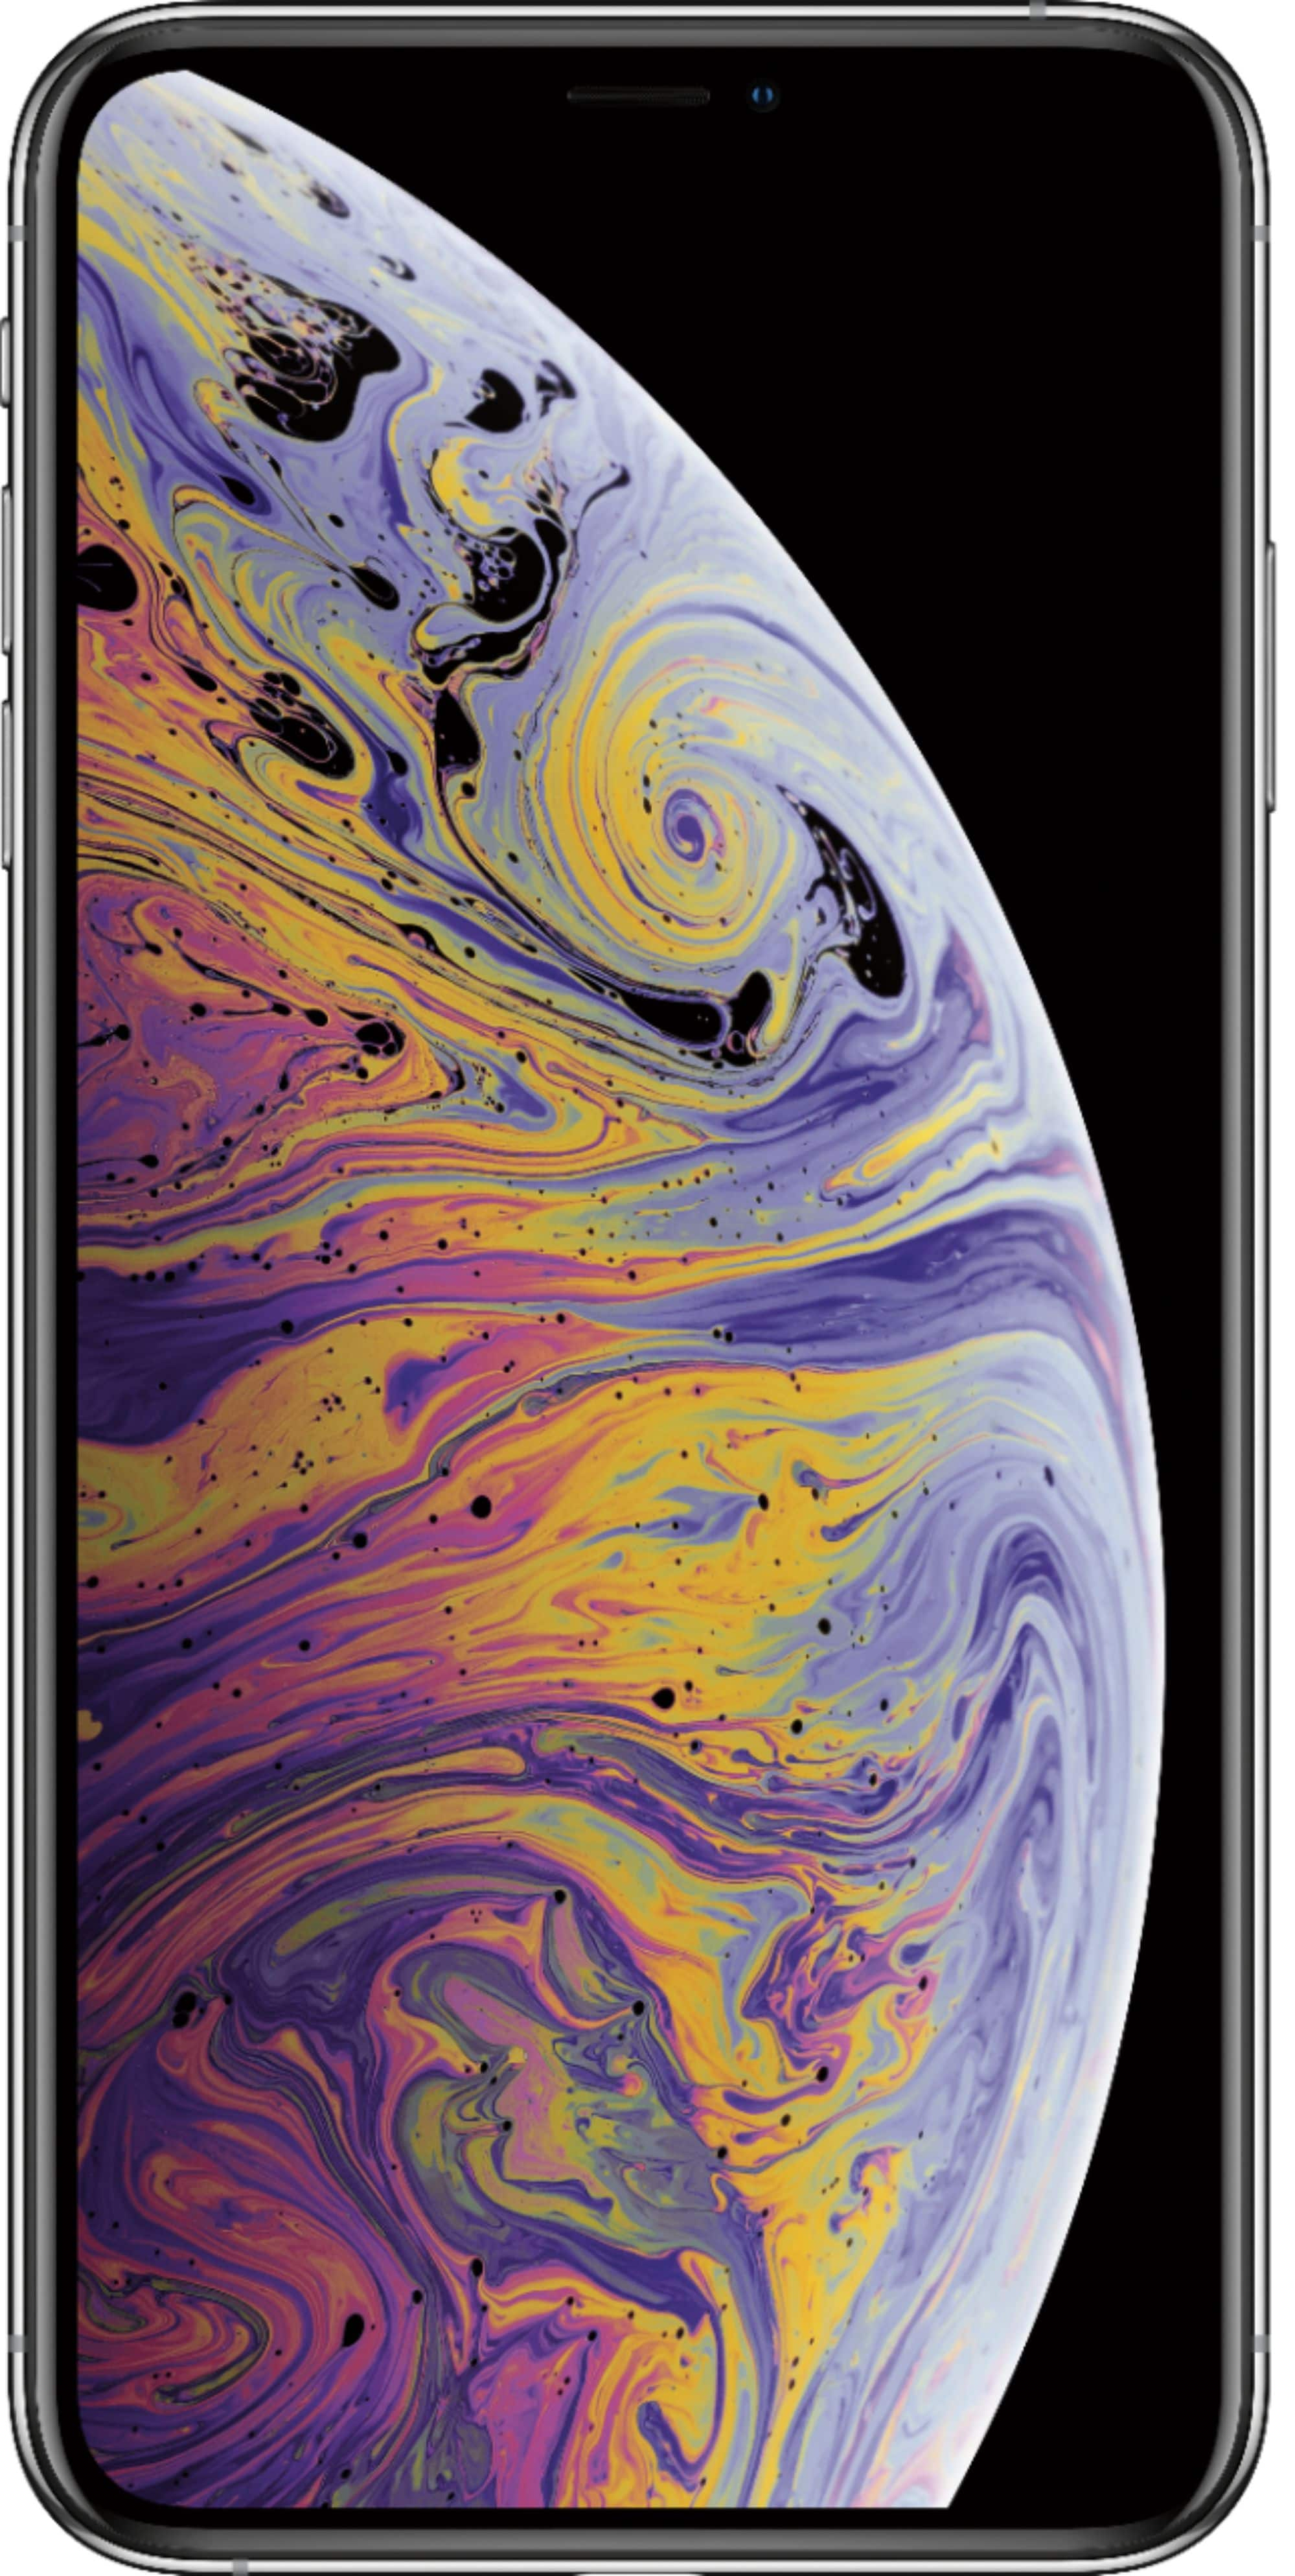 "Apple iPhone XS Max 256GB $649 One-Time Payment + $65 for 1 month service plan [Apple 1 Yr Warranty] Large 6.5"" screen"